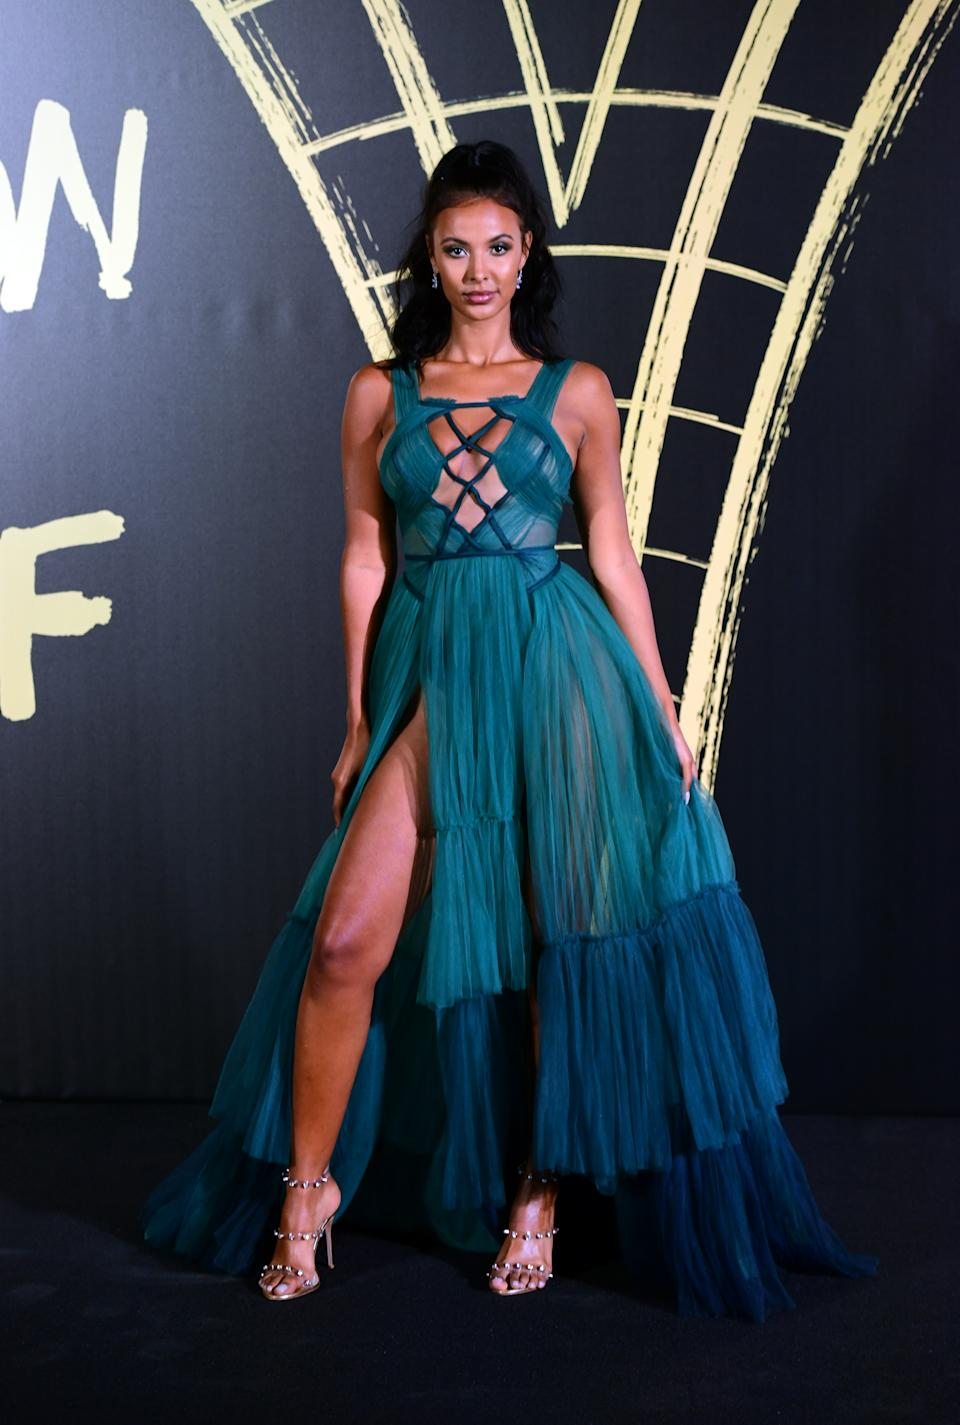 Maya Jama arriving on the red carpet for Naomi Campbell's Fashion For Relief Gala during London Fashion Week [Photo: PA]